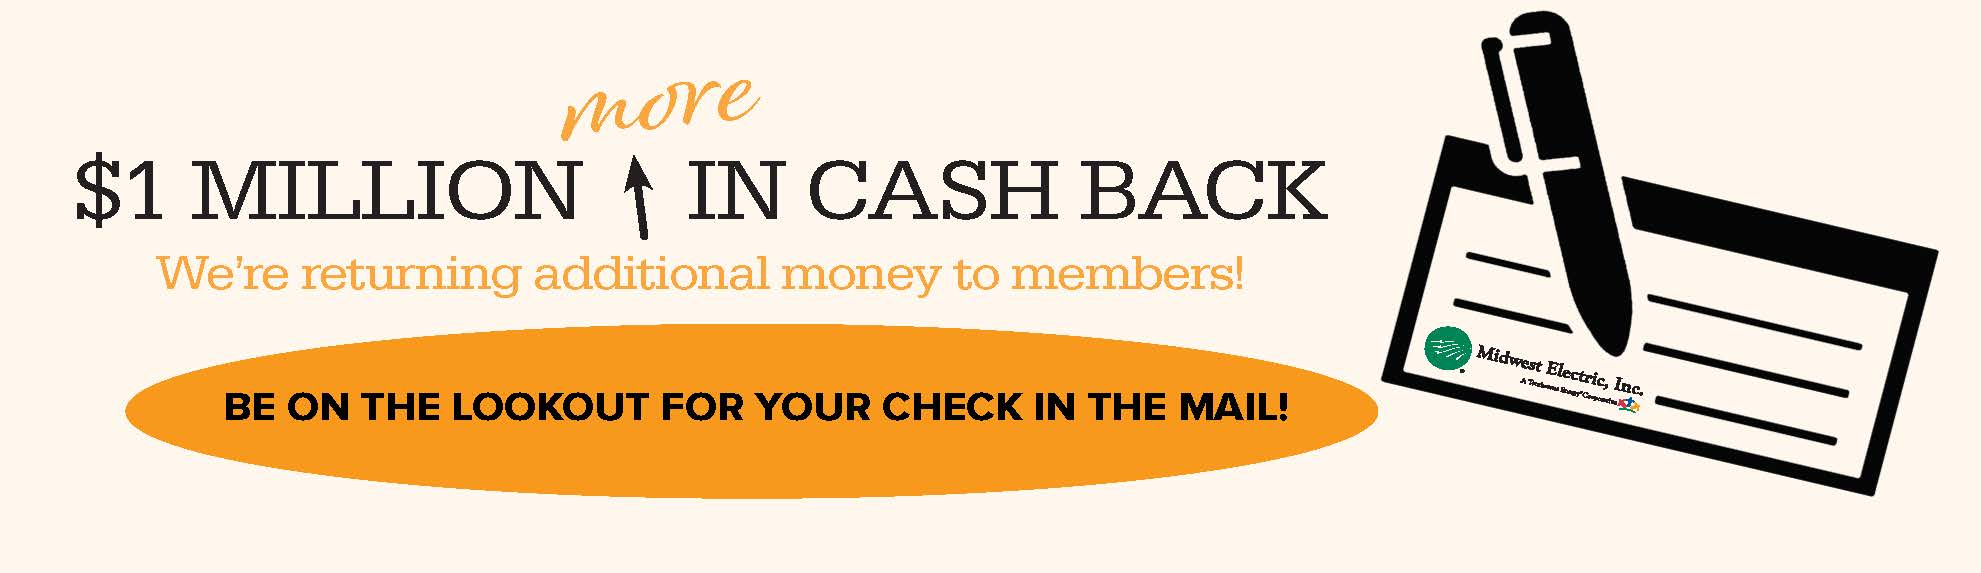 Members will get a special patronage cash back check in April